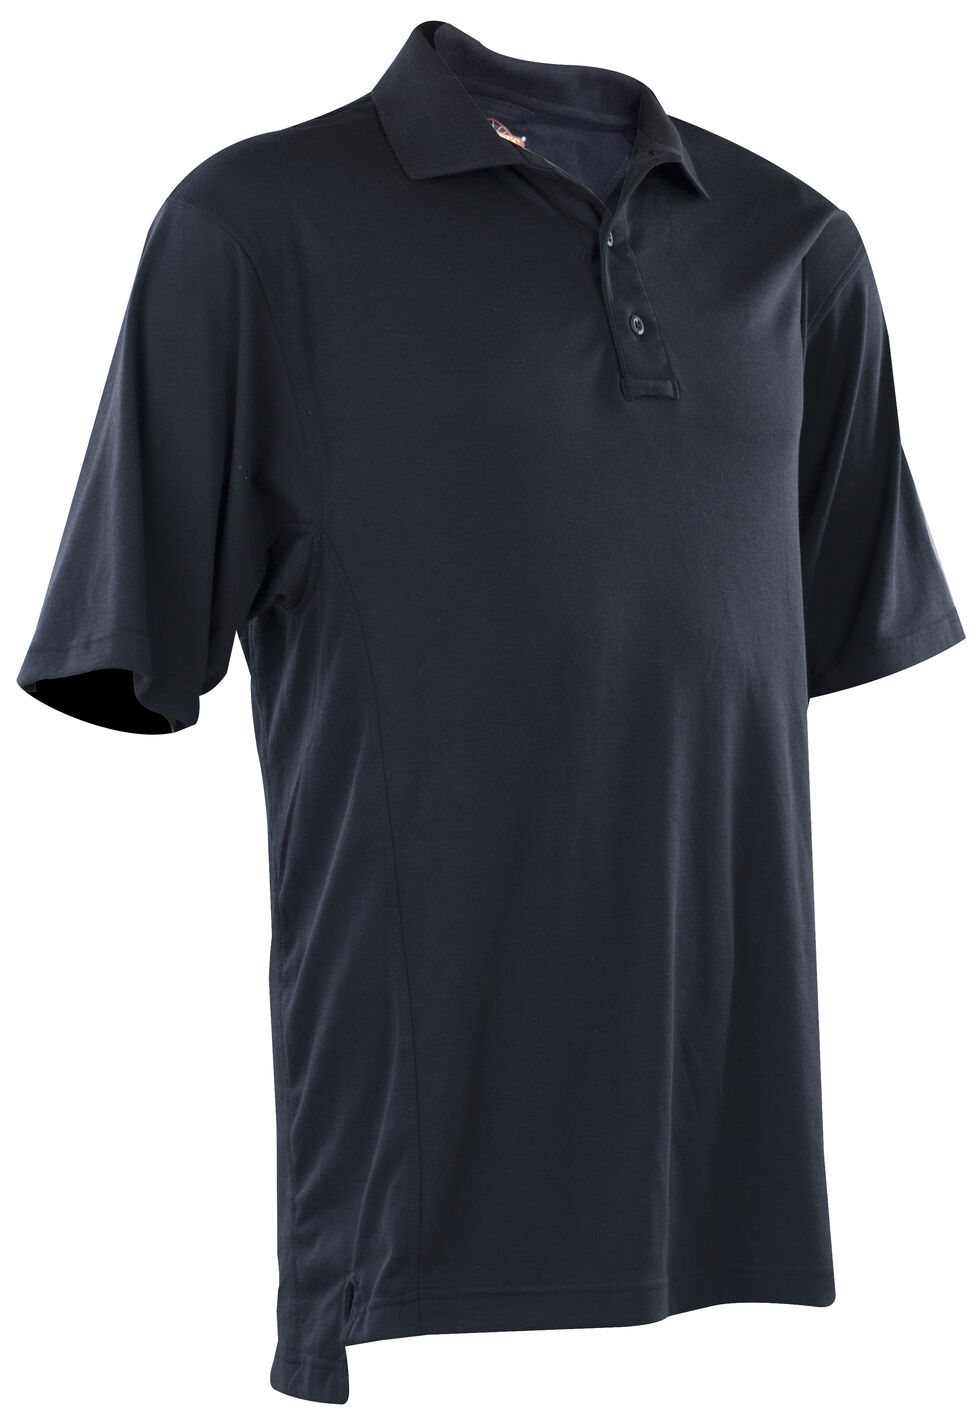 Tru-Spec Men's Navy 24-7 Dri-Release Polo Shirt , Navy, hi-res